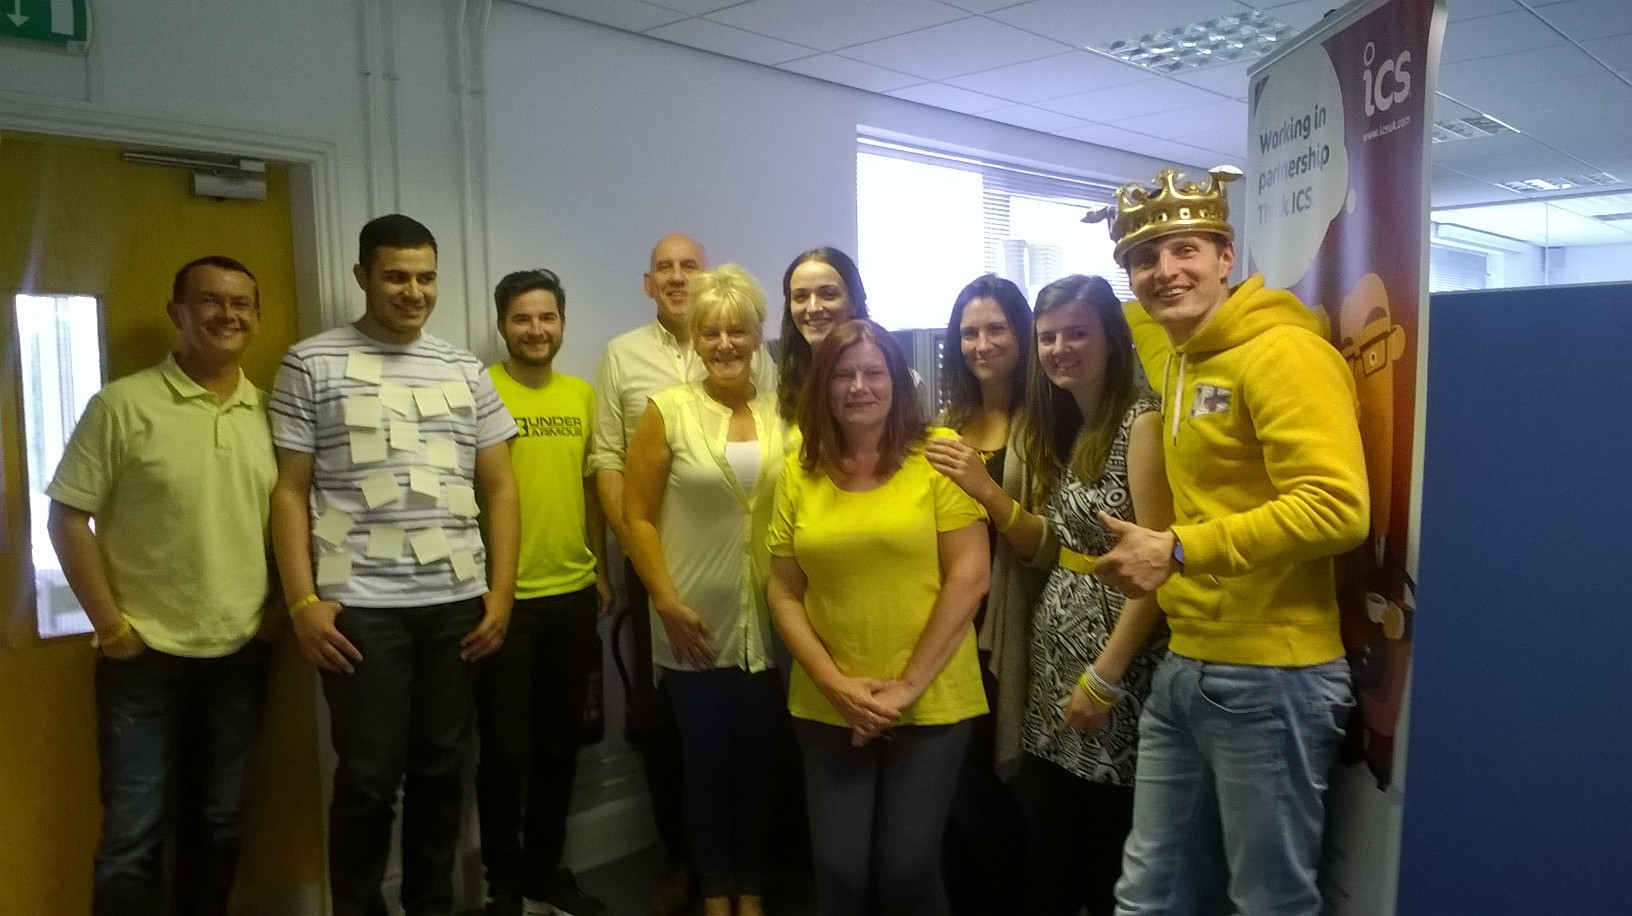 Some of the ICS Team wearing yellow for Dementia Awareness Week